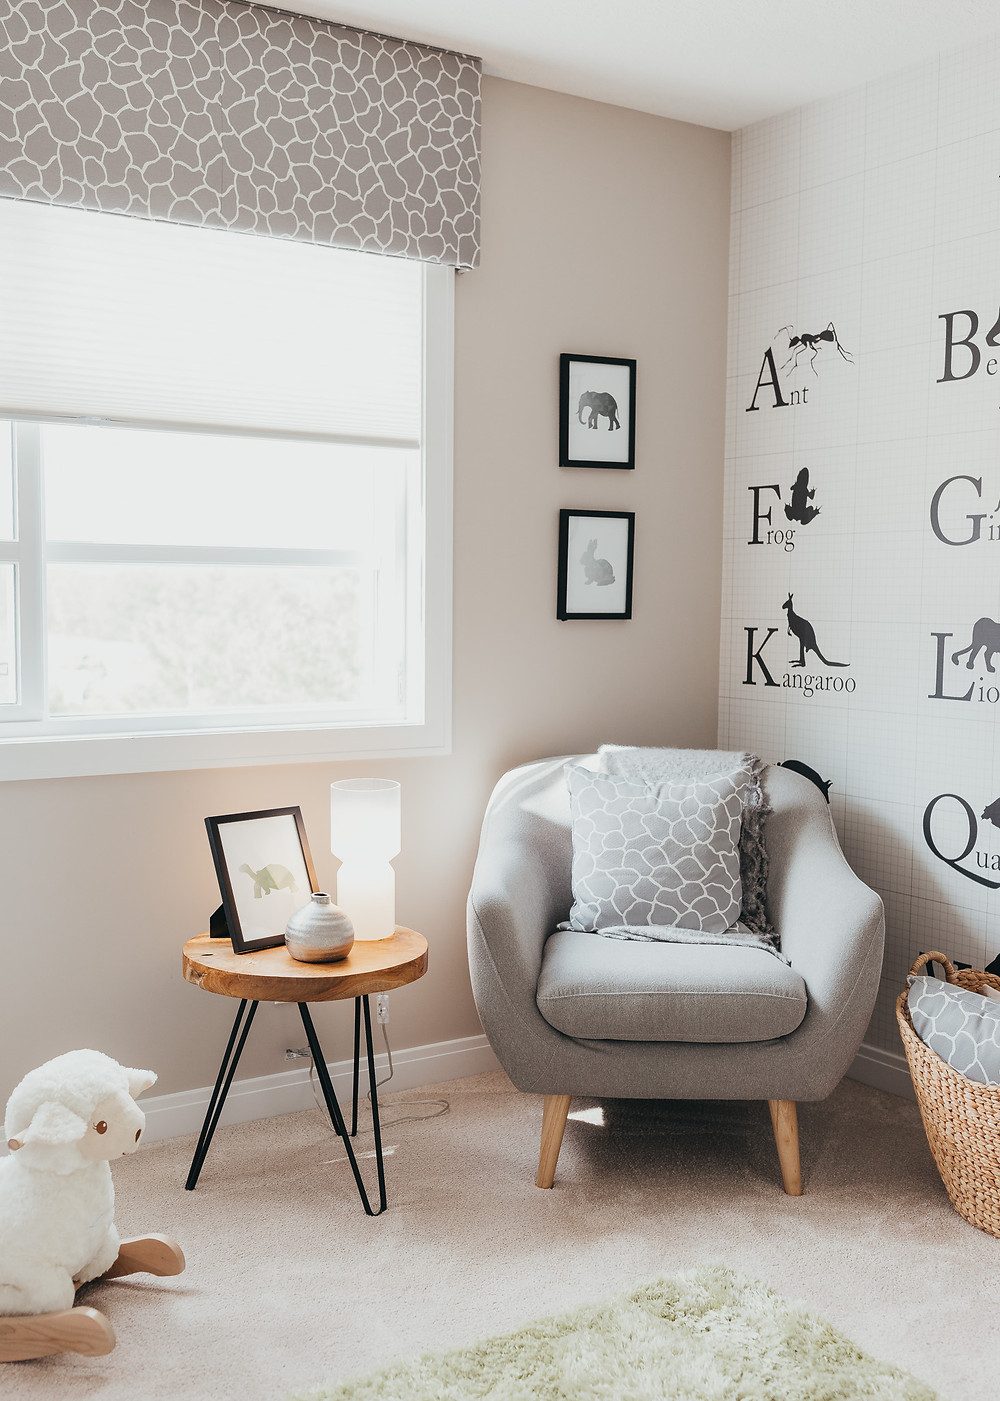 A baby nursery decorated with alphabet wallpaper on the wall.